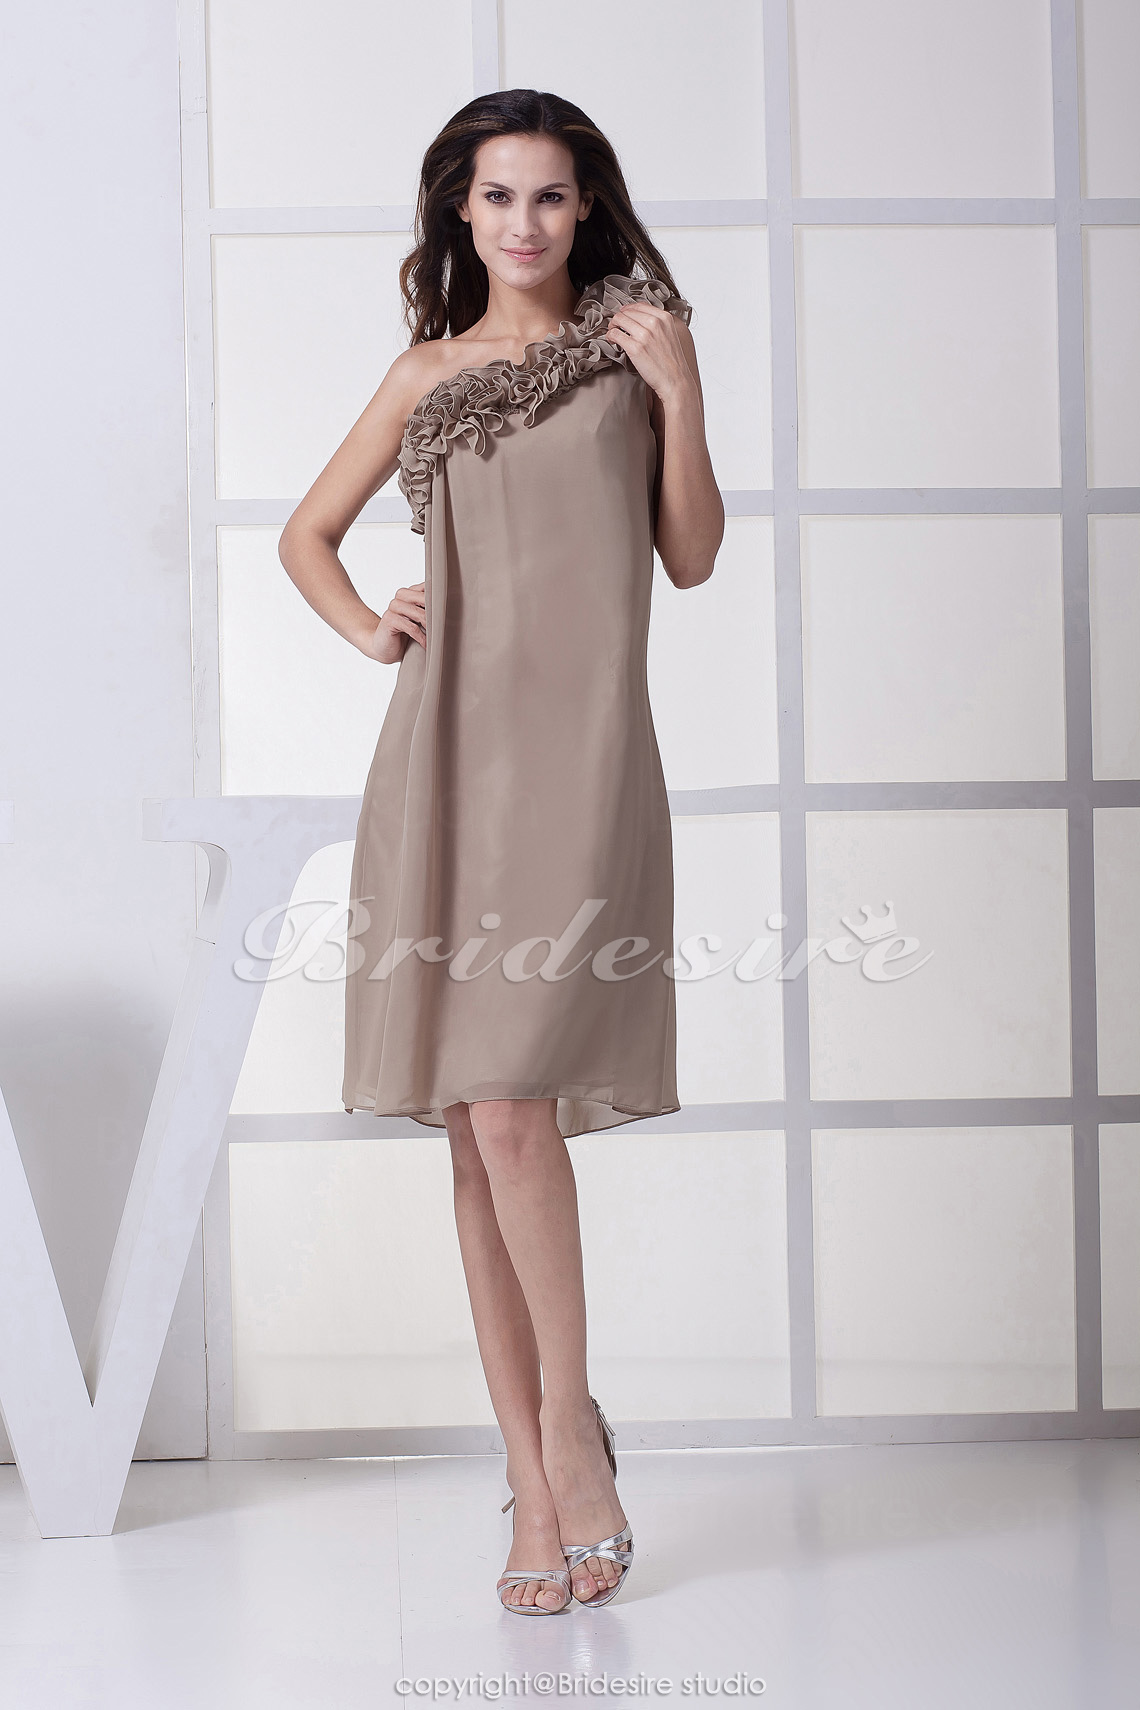 Sheath/Column One Shoulder Knee-length Sleeveless Chiffon Bridesmaid Dress